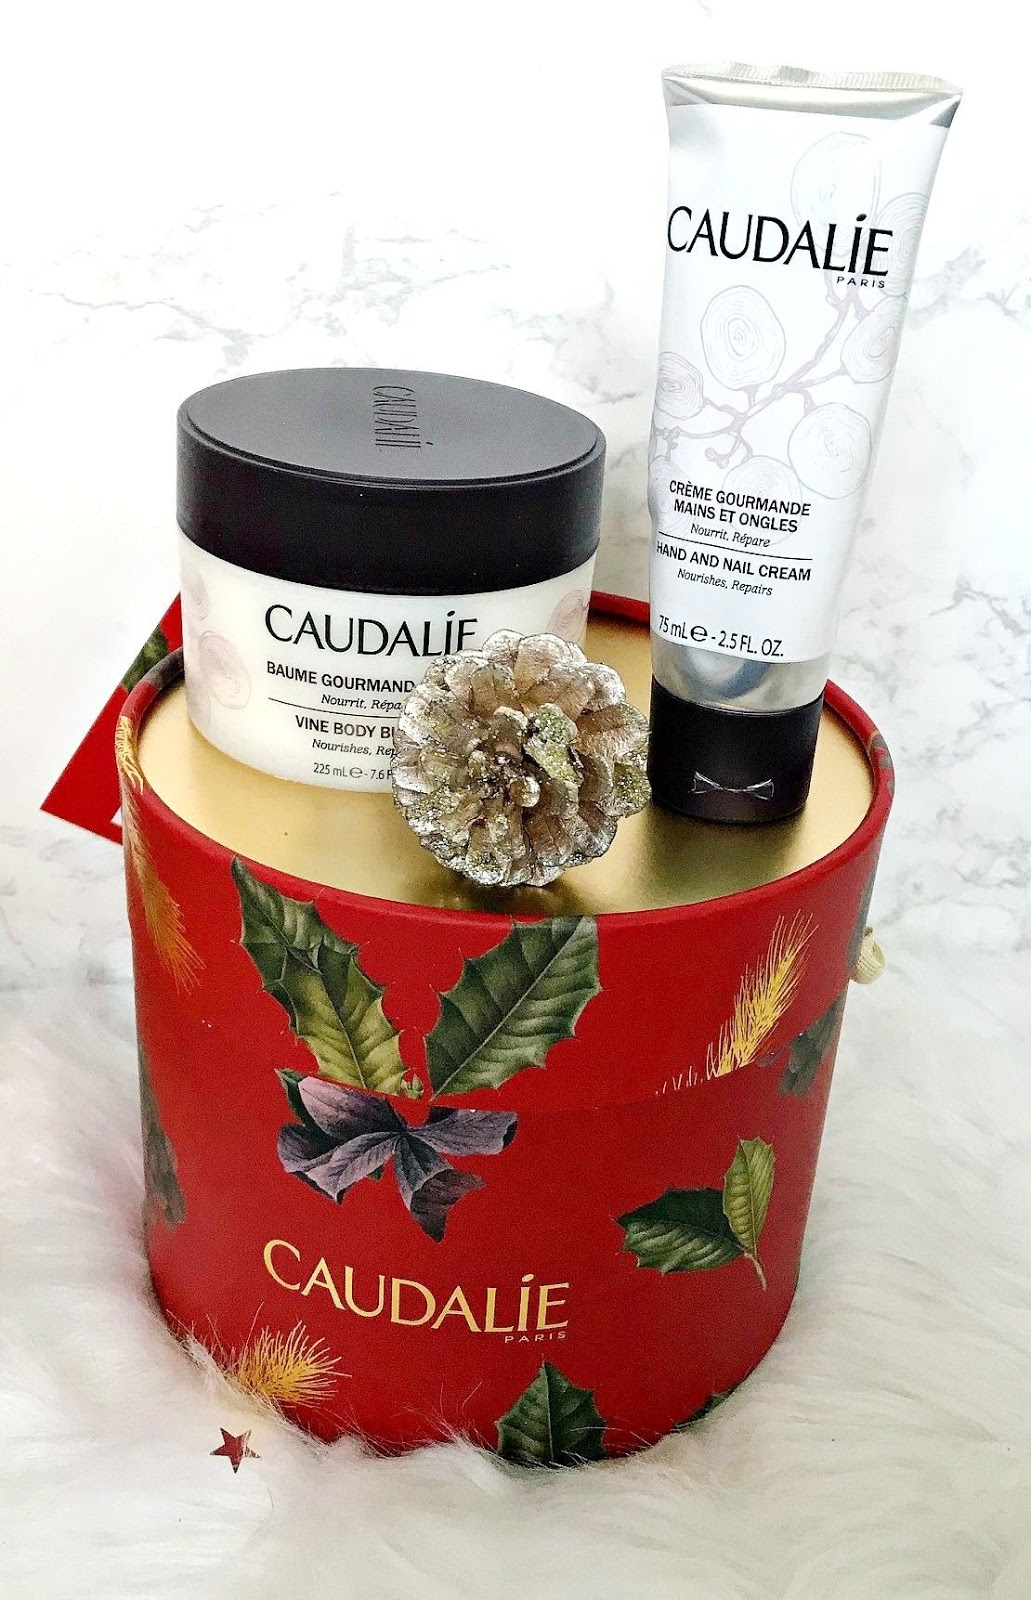 Caudalie Luxury Vine Body Set Review